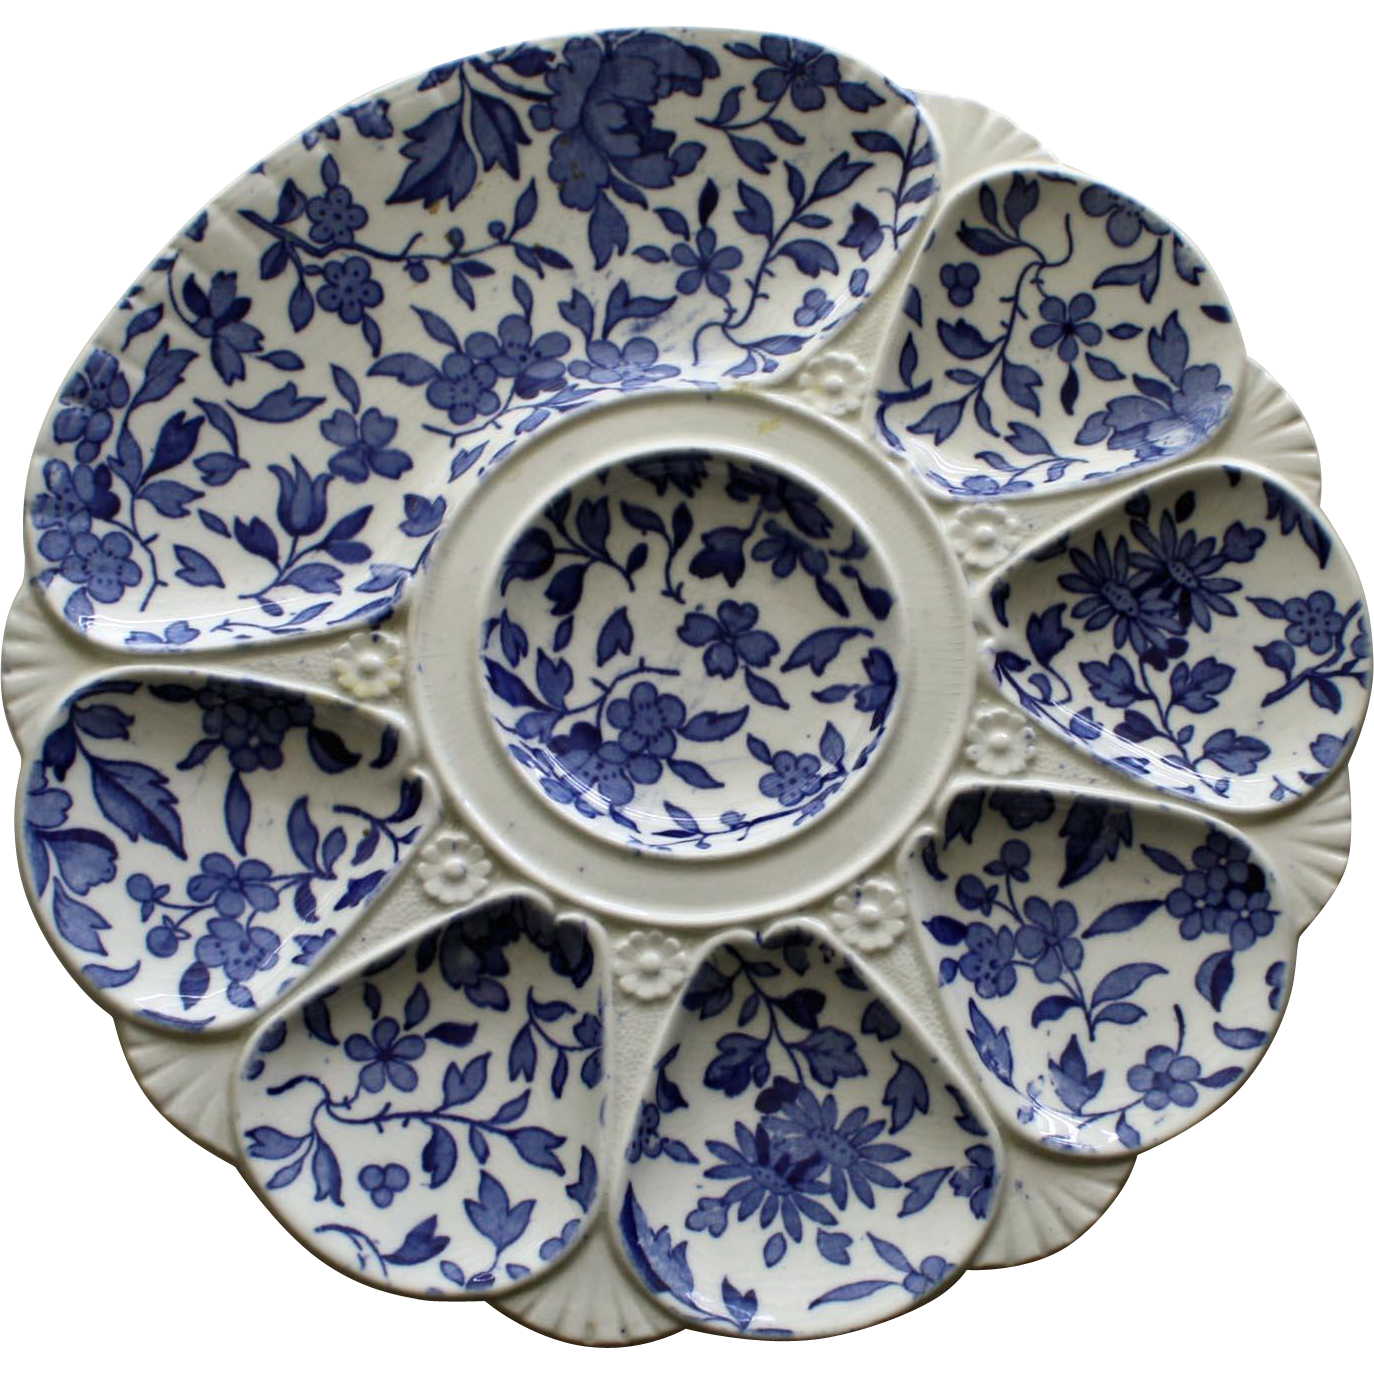 Minton Made Outstanding Oyster Plates This Lovely Blue And White Plate Has The Pattern Name Dorset There Are 6 Wells A Center Sauce Well